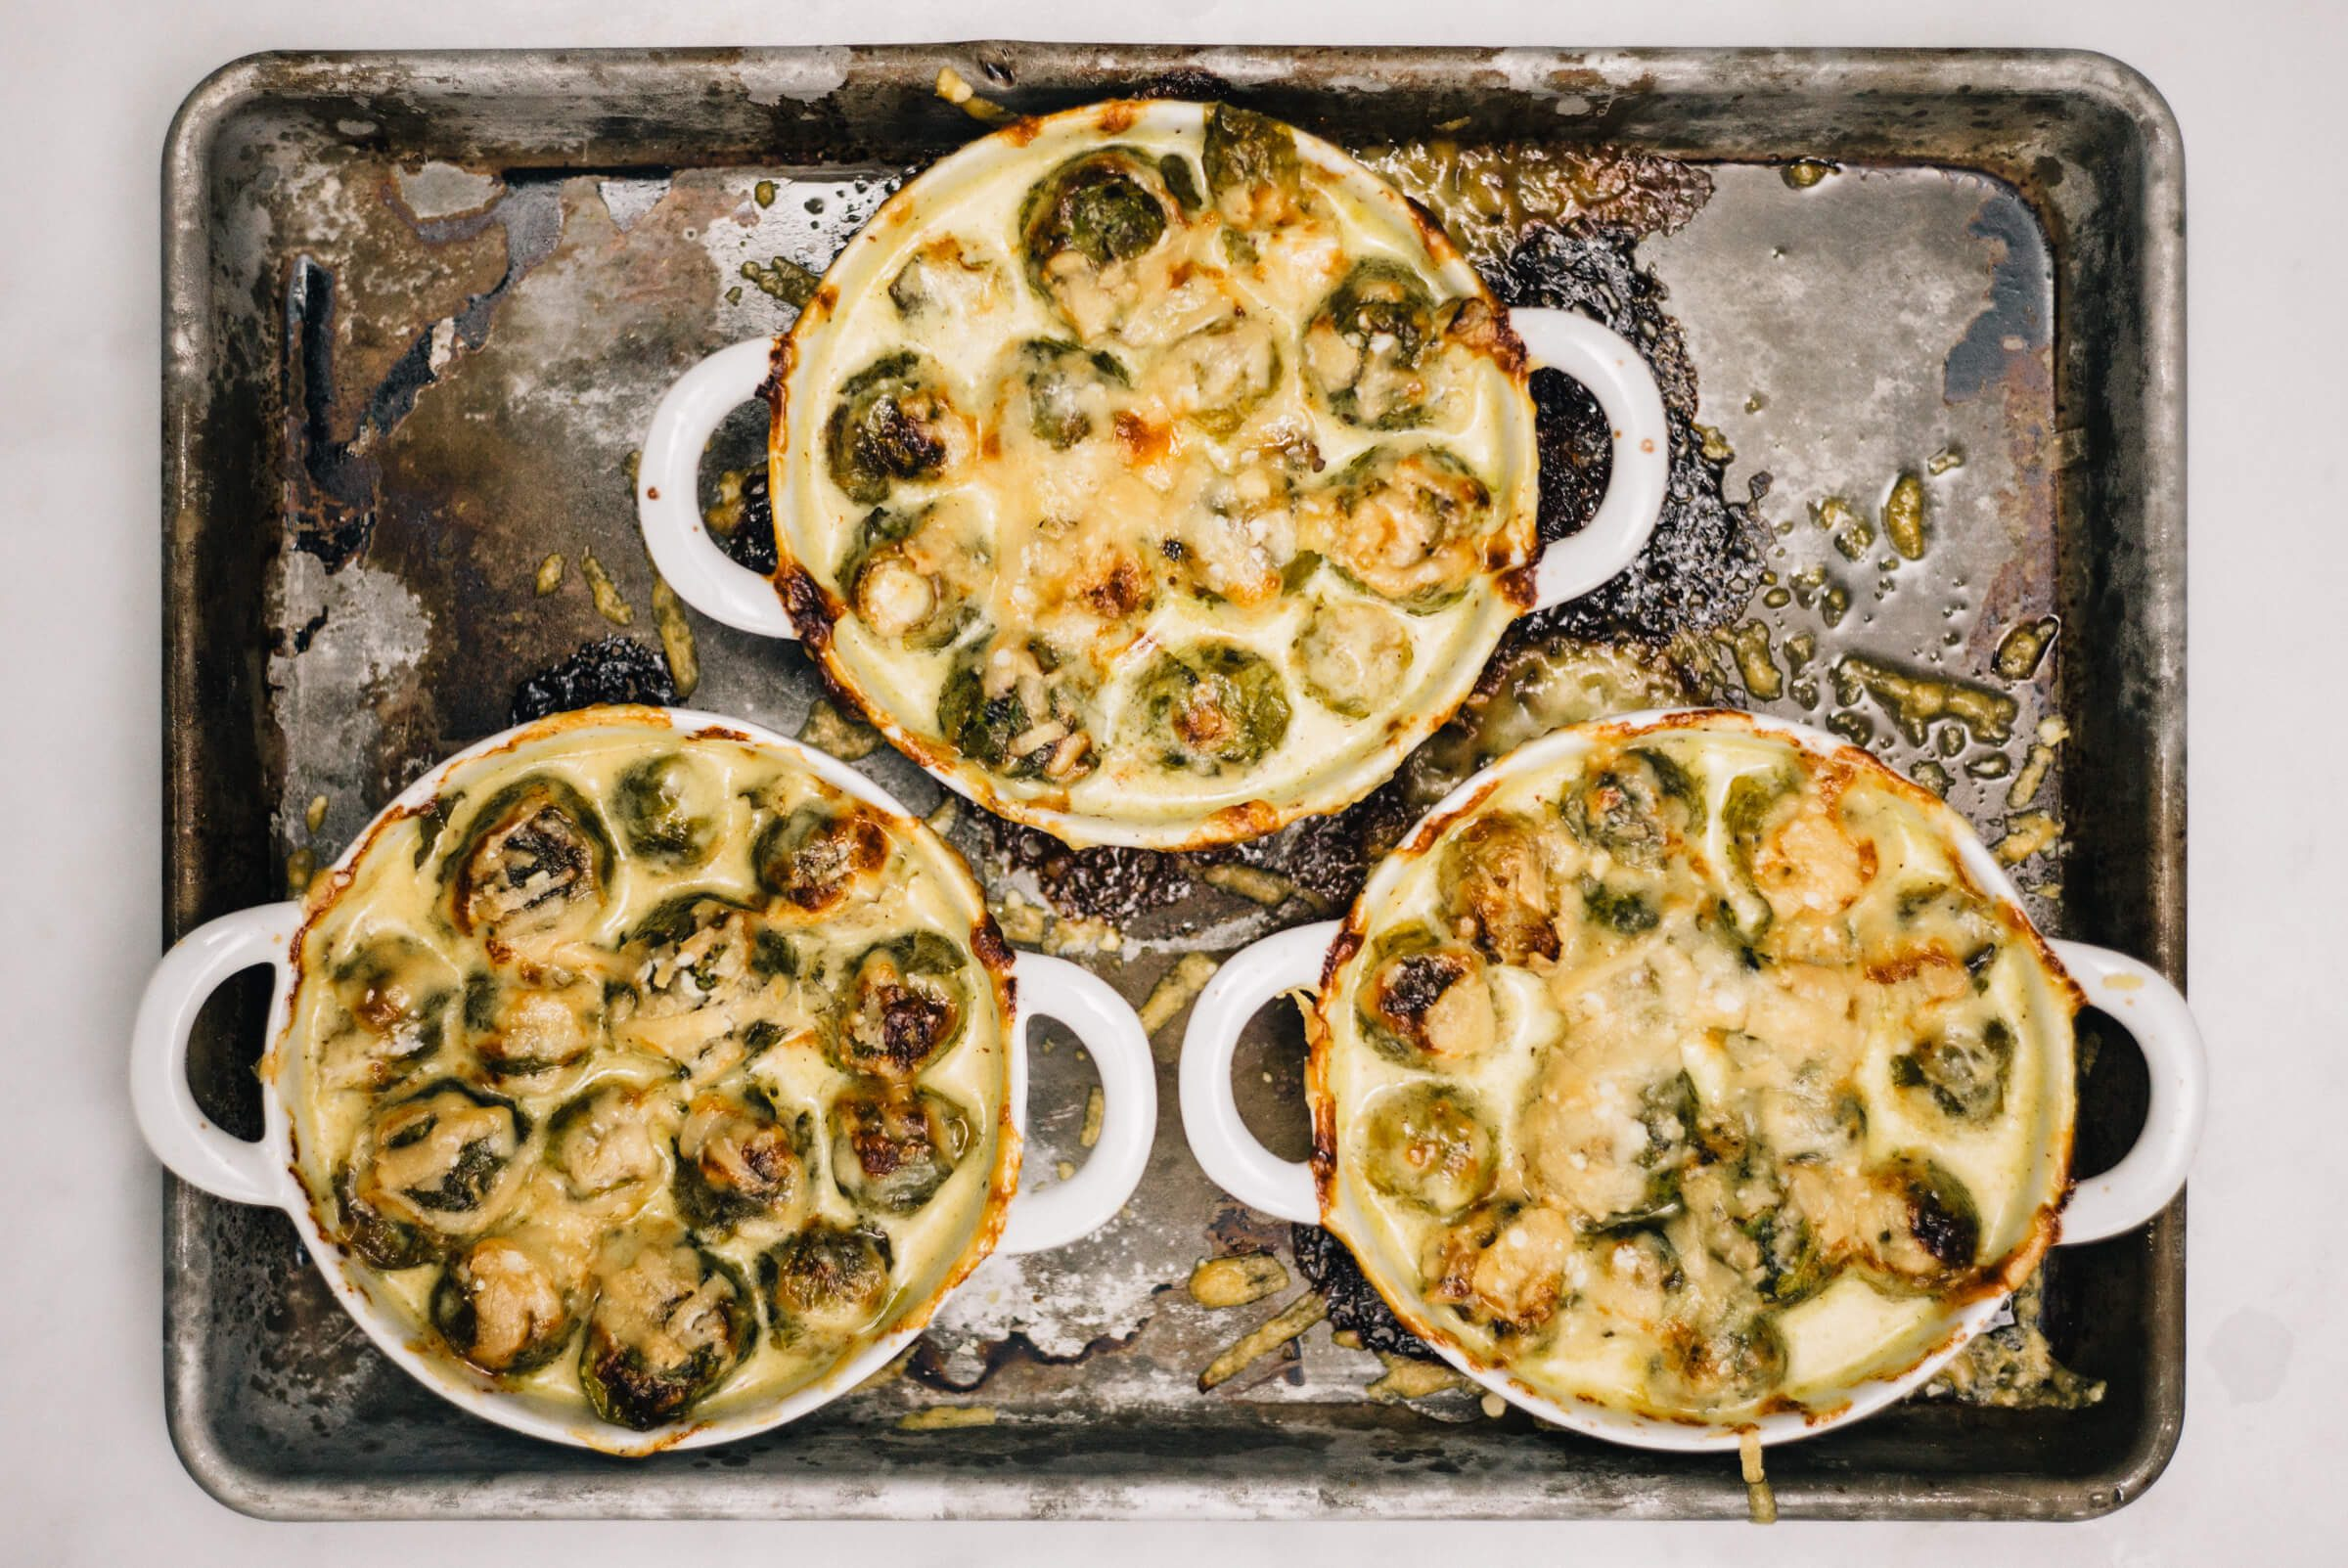 Baked Brussels Sprouts with stilton cheese is a simple delicious side dish with the taste sf